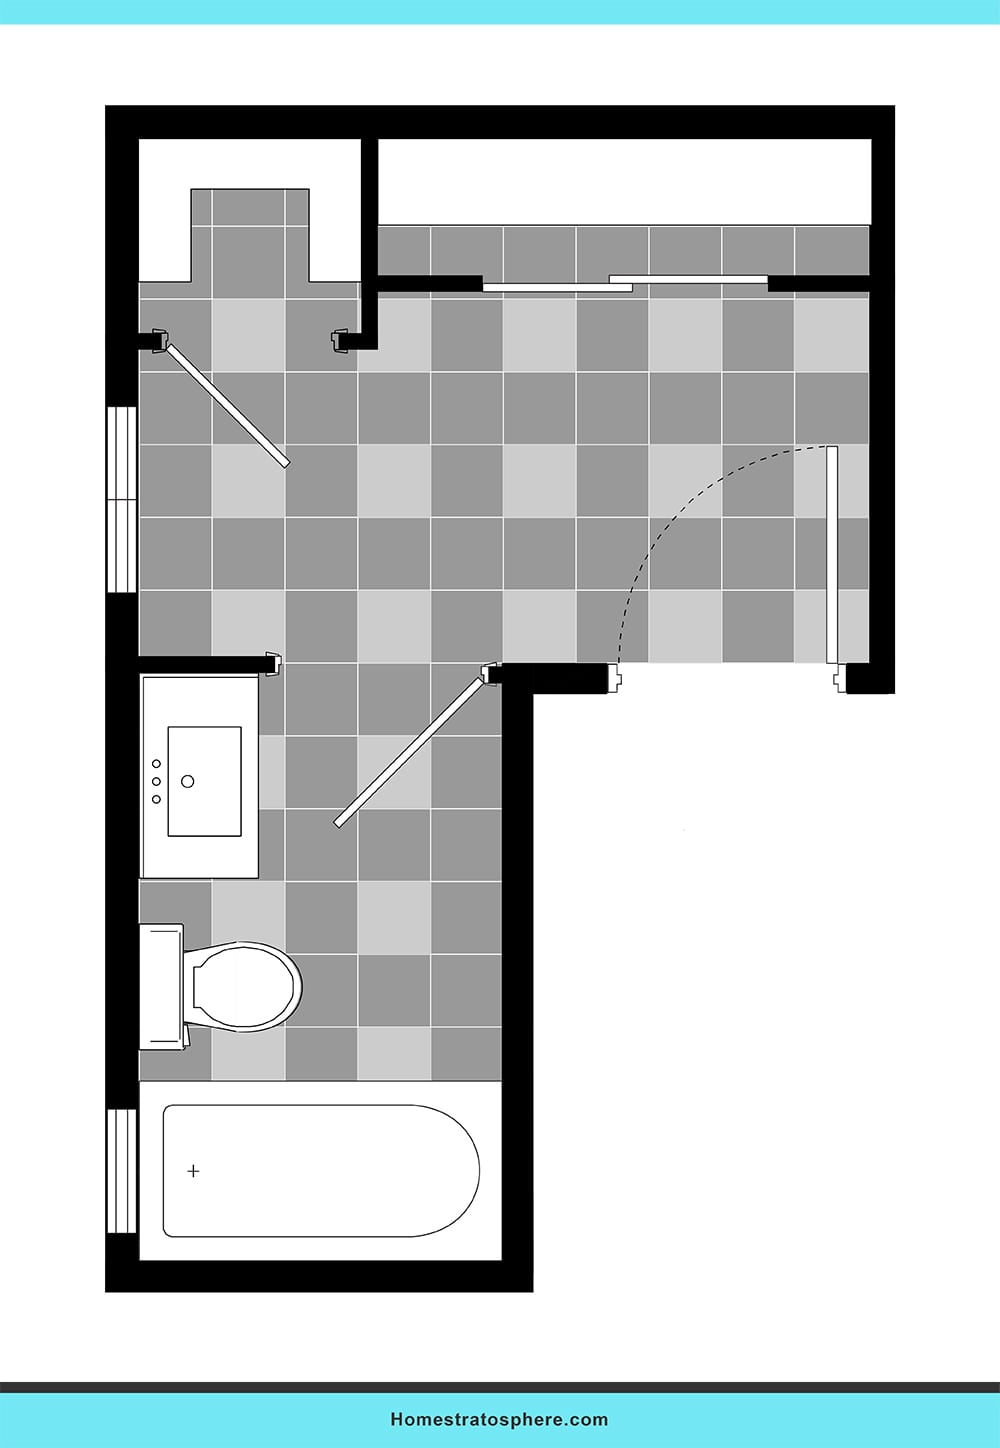 35 Bathroom Layout Ideas Floor Plans To Get The Most Out Of The